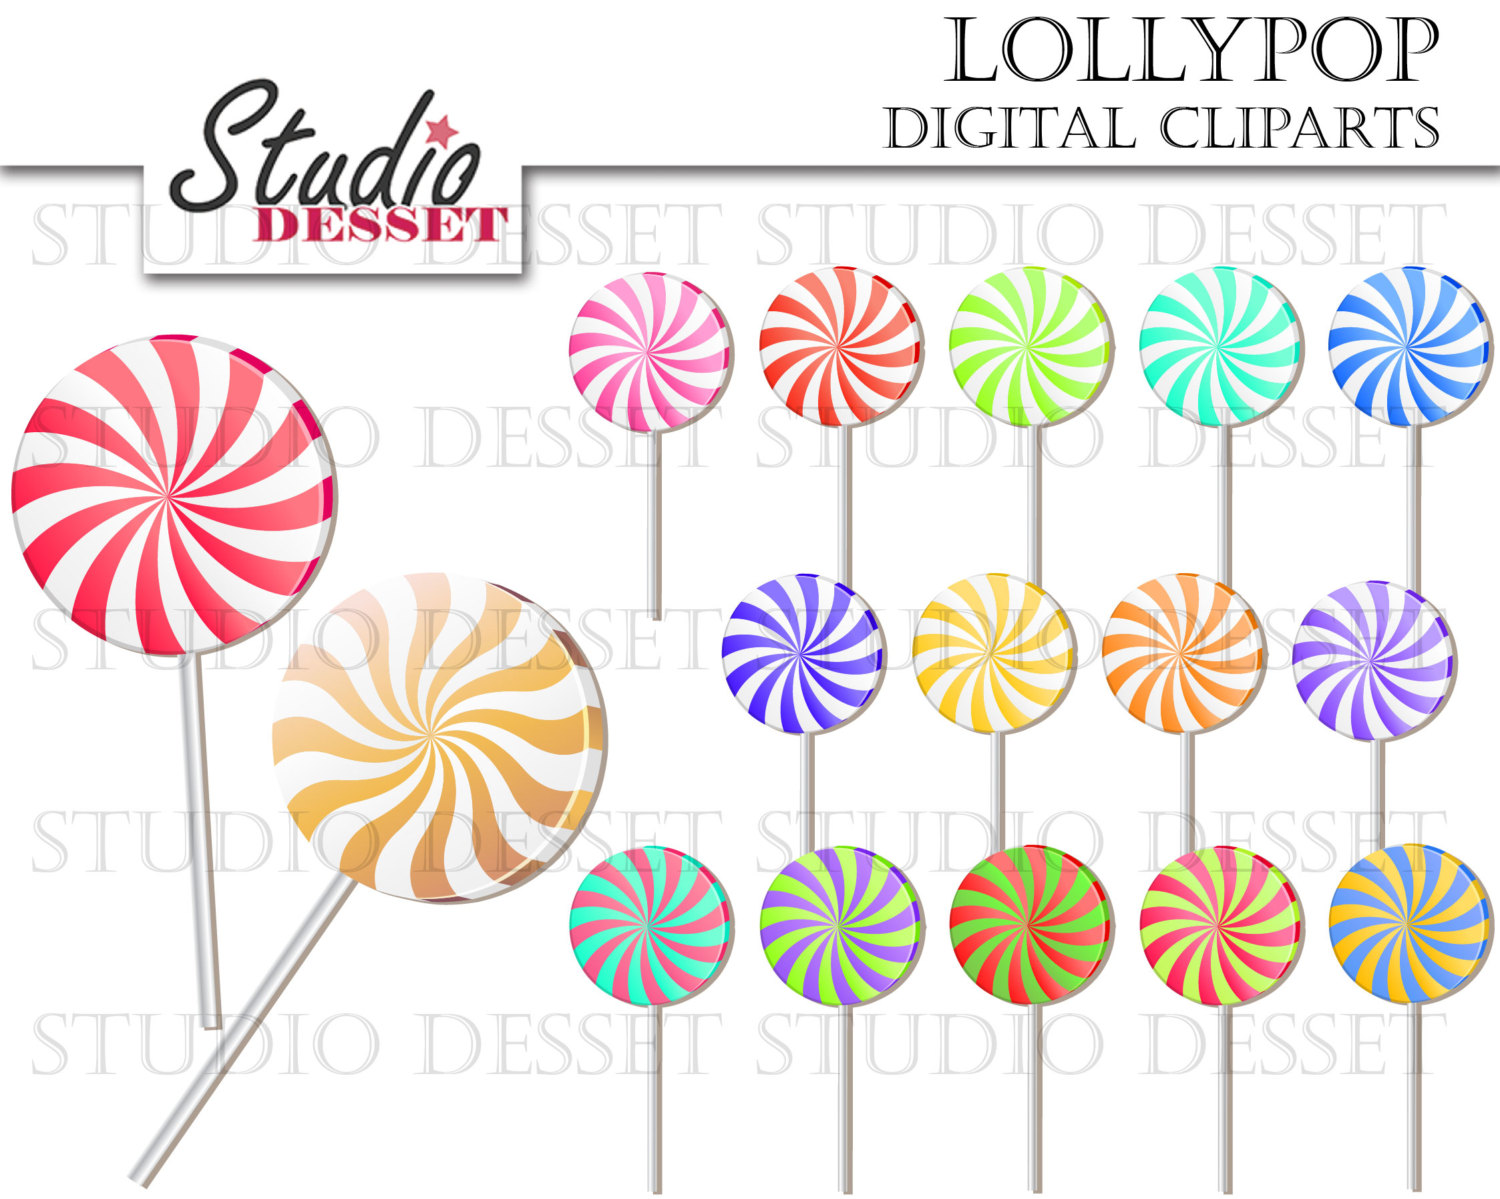 Candy Cane clipart lollipops A Digital is This Candy